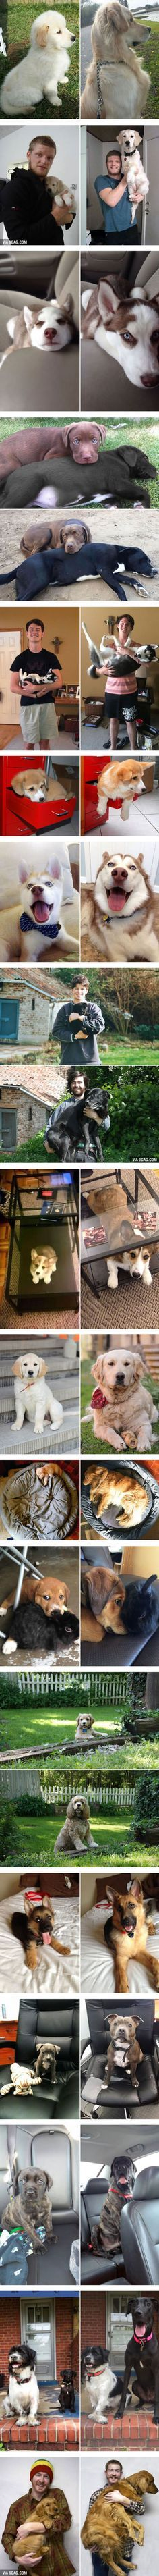 awwwwww!!!!!!!!! And the last pics look like the first dog is the same!